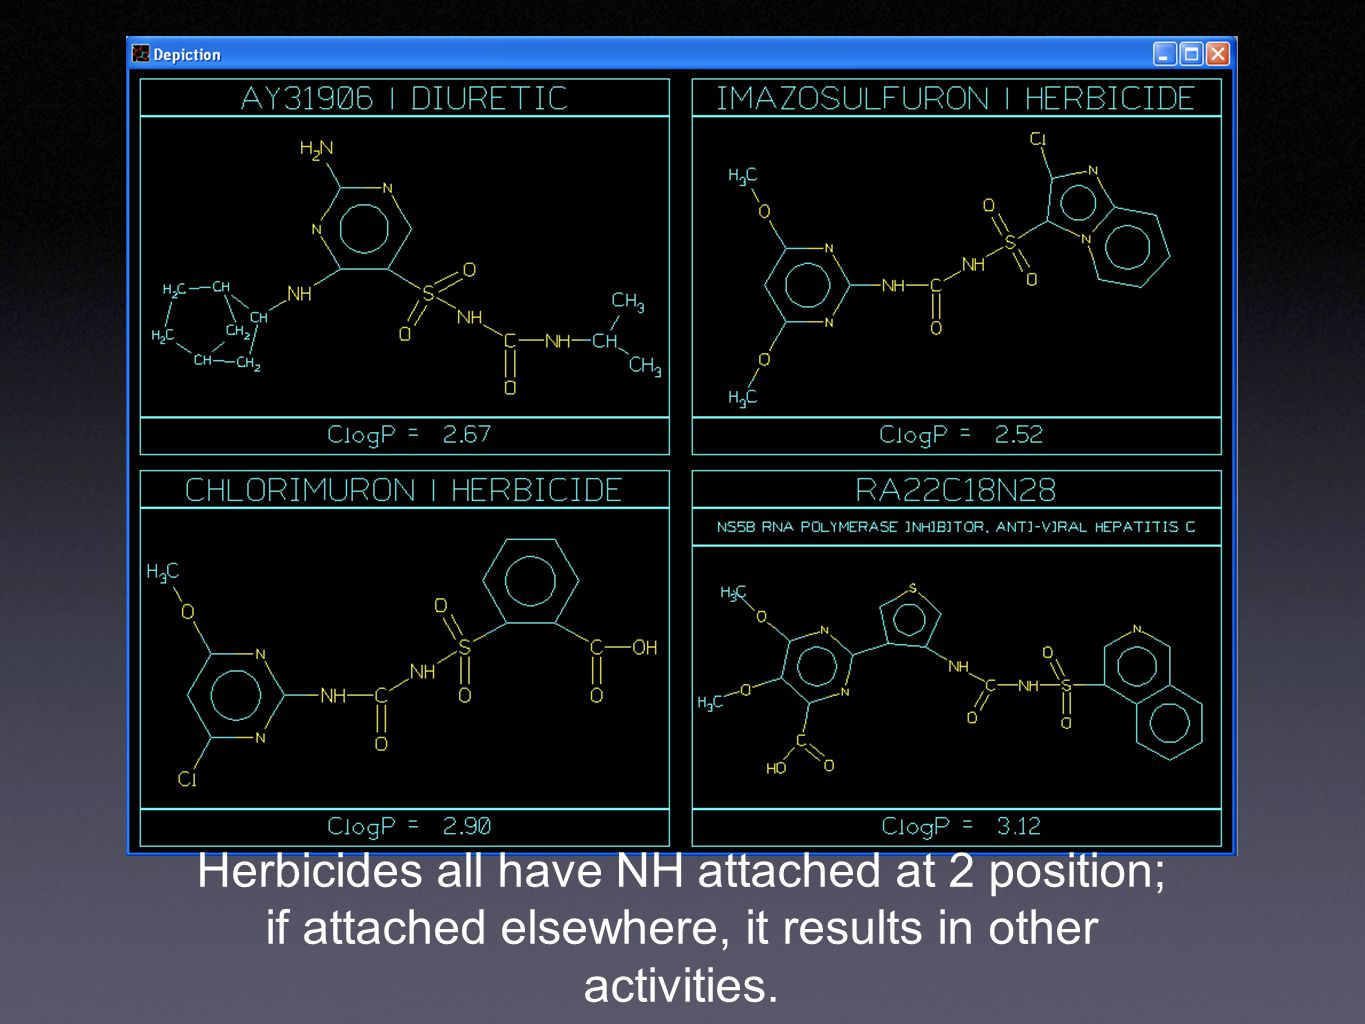 Herbicides all have NH attached at 2 position; if attached elsewhere, it results in other activities.